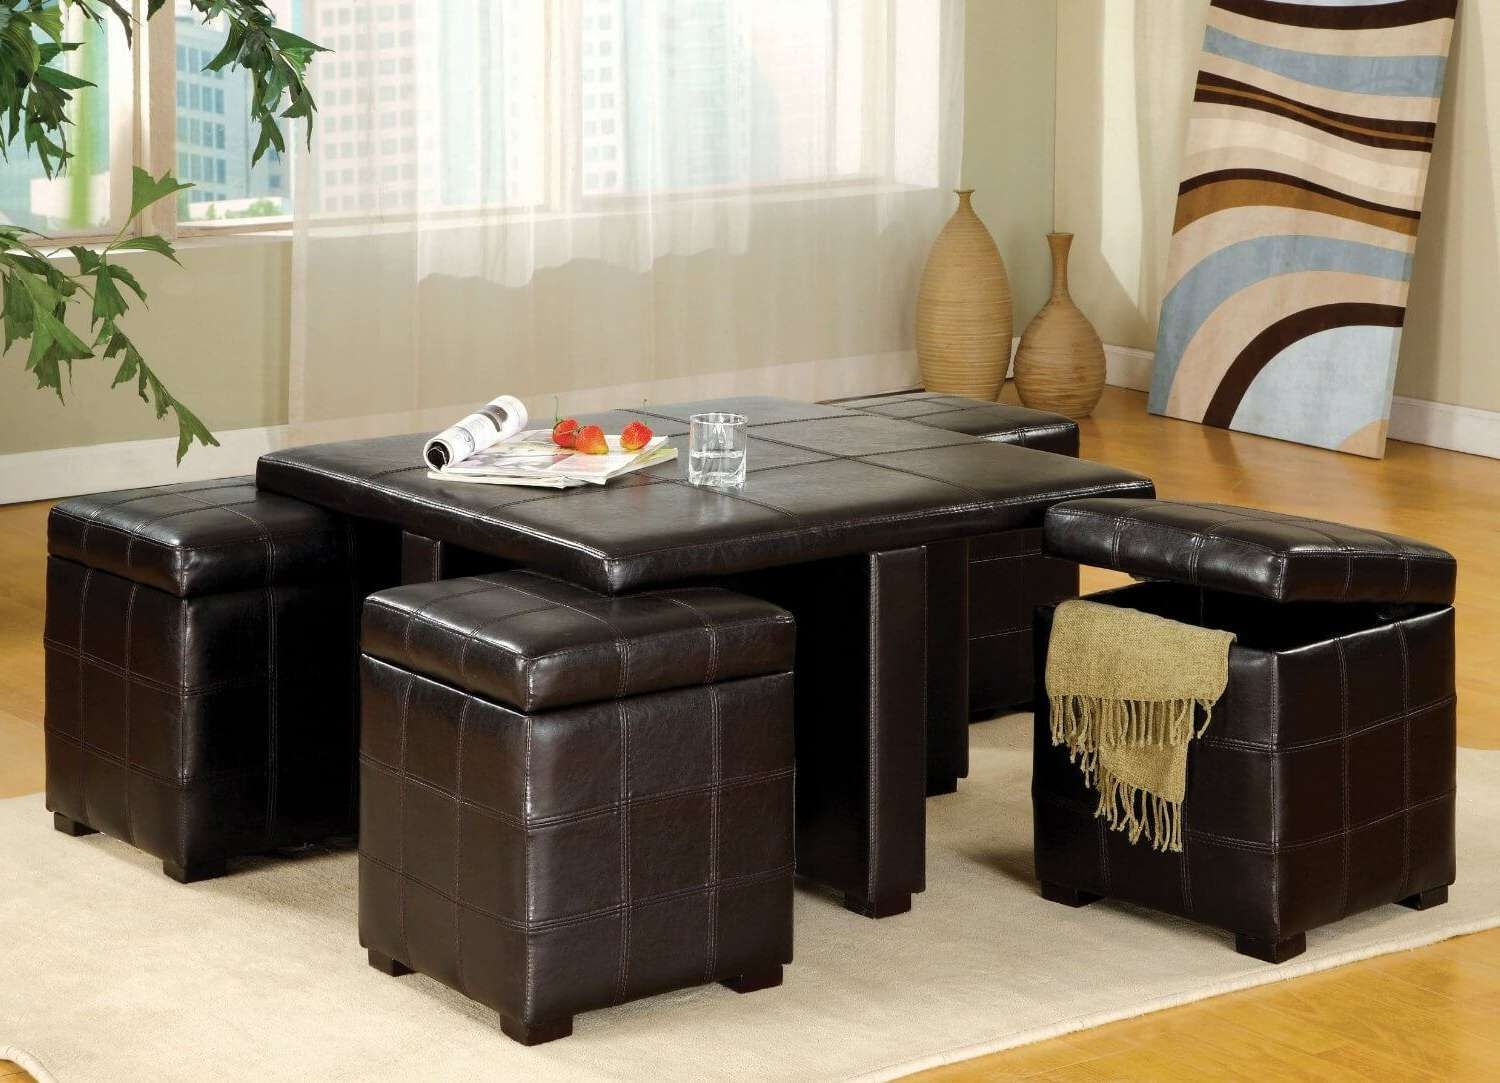 Preferred Brown Leather Ottoman Coffee Tables Pertaining To 36 Top Brown Leather Ottoman Coffee Tables (View 17 of 20)